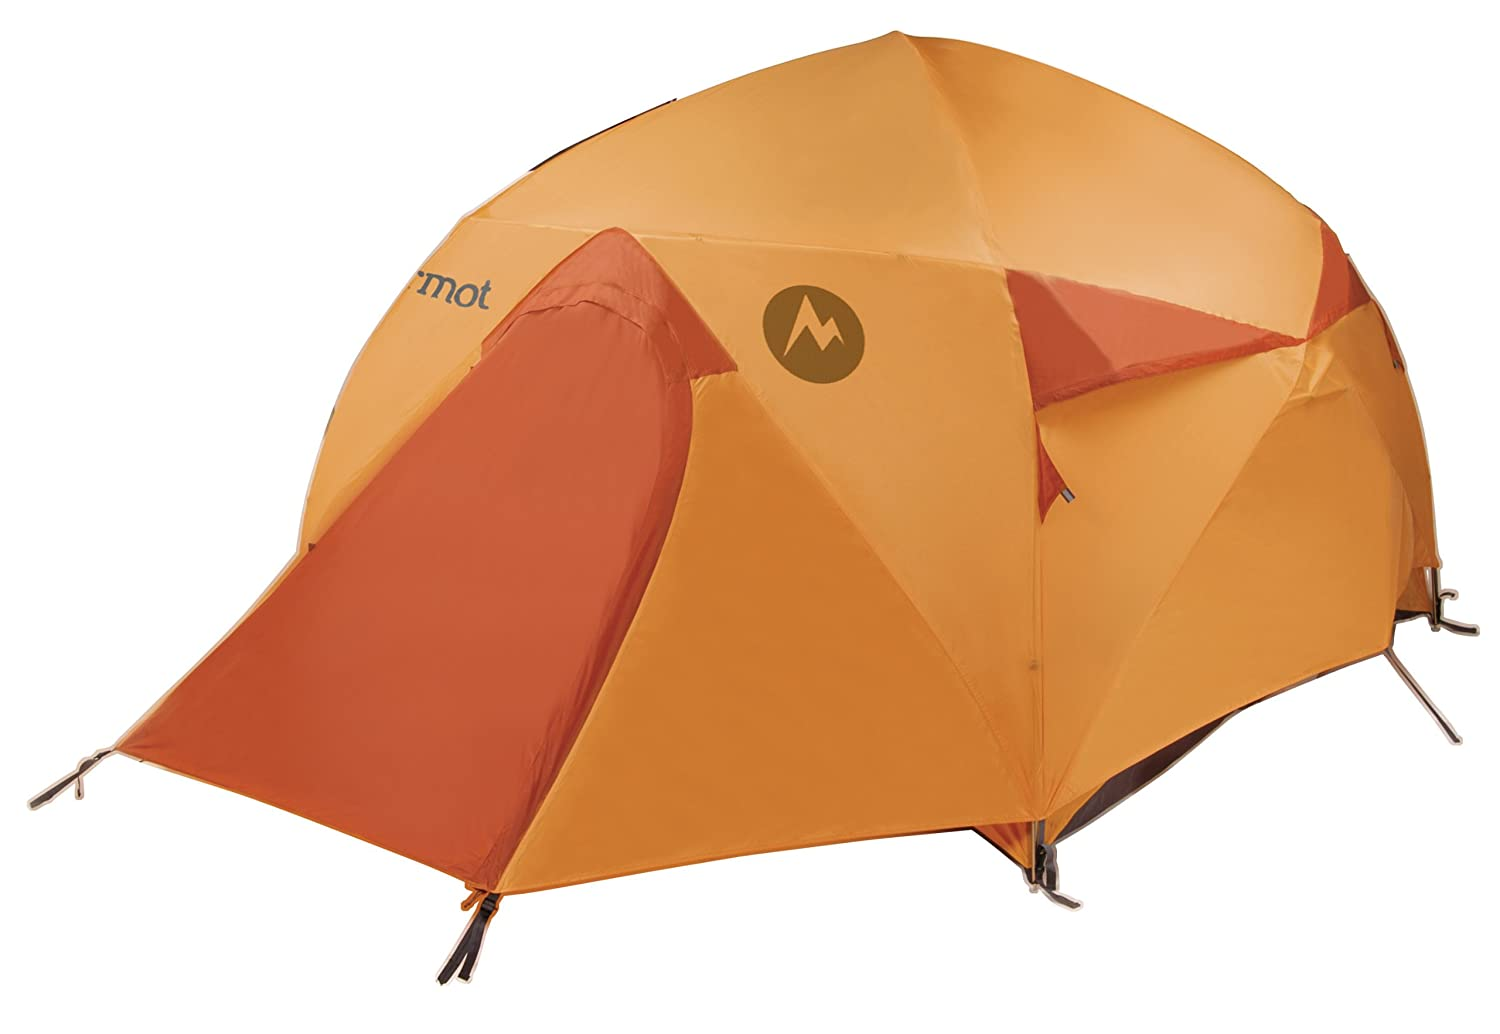 Amazon.com  Marmot Halo 4-Persons Tent Orange One  Sports u0026 Outdoors  sc 1 st  Amazon.com : marmot tent accessories - memphite.com